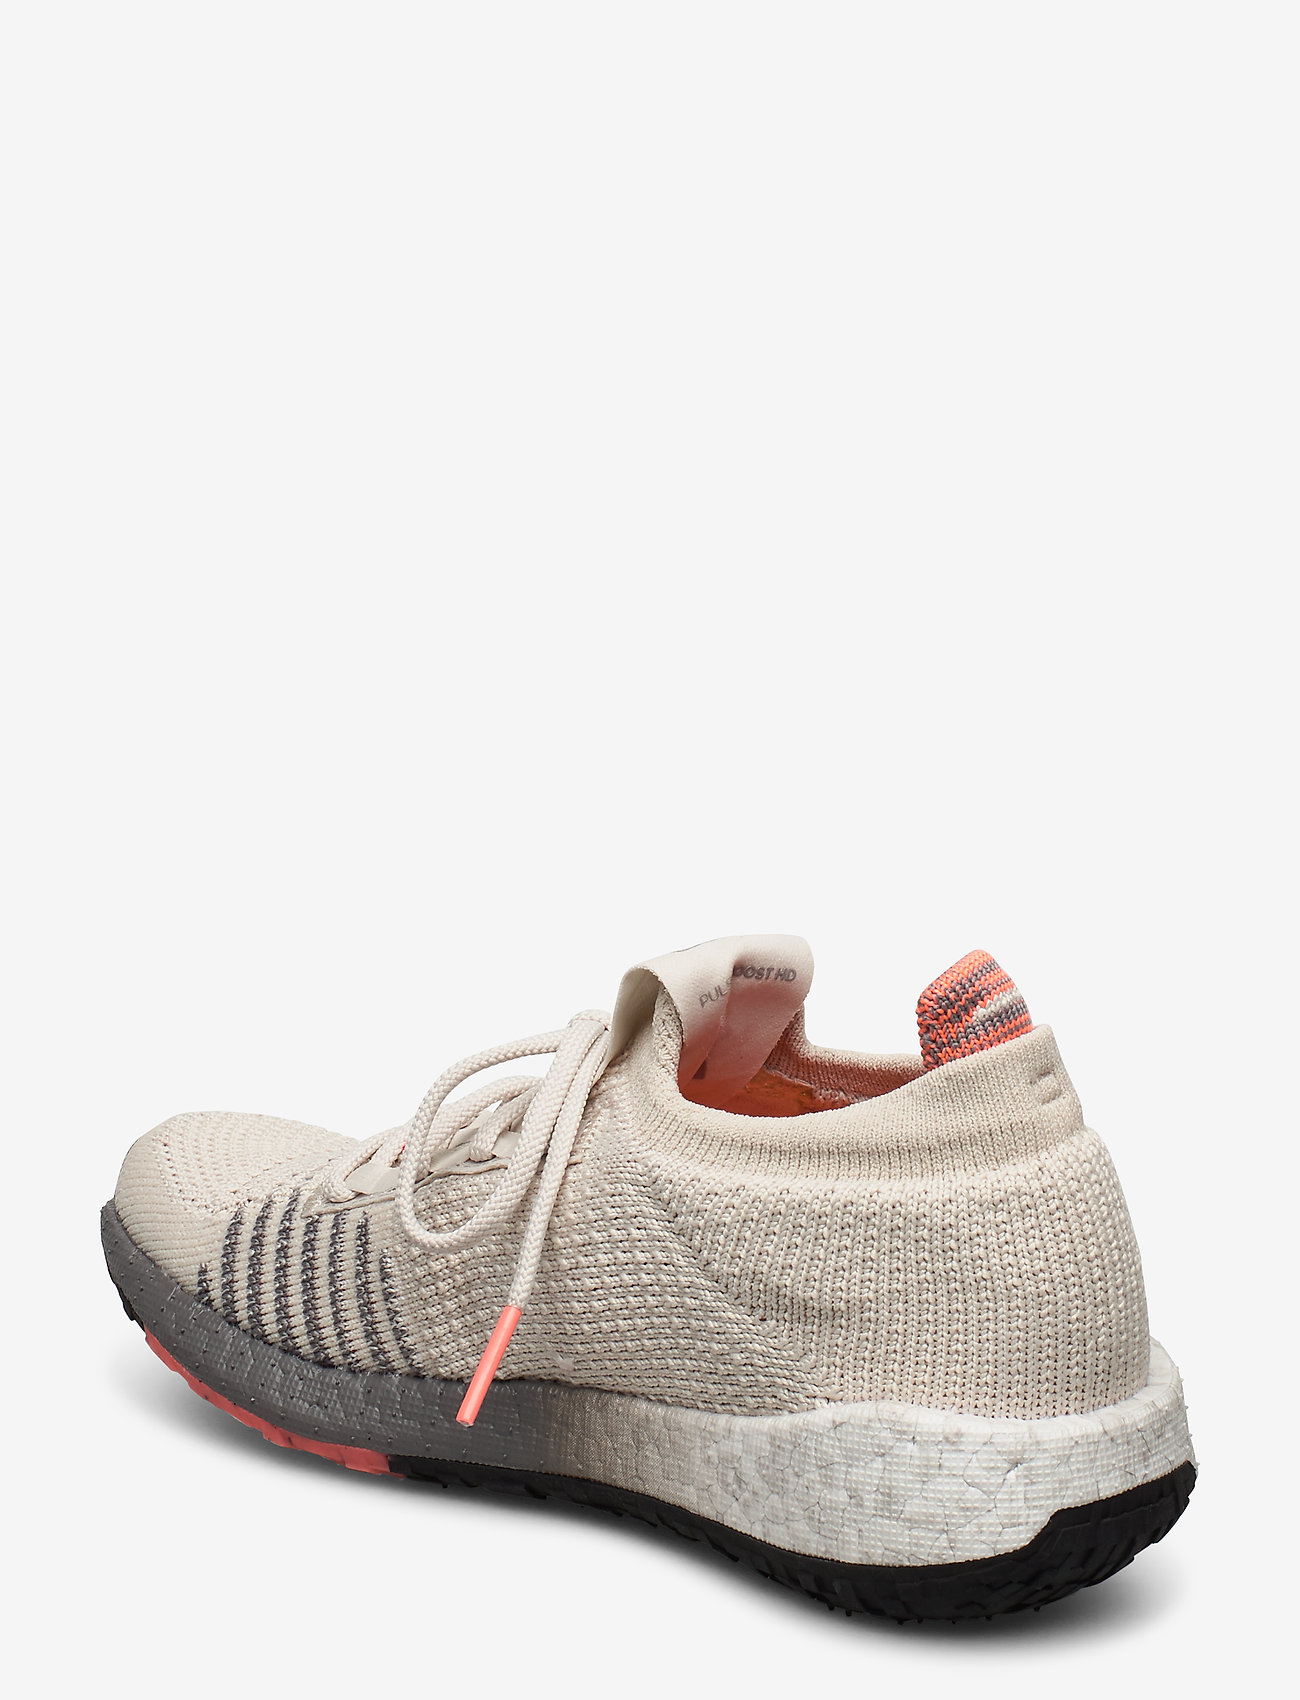 Pulseboost Hd W (Alumin/cwhite/sigcor) (714.35 kr) - adidas Performance